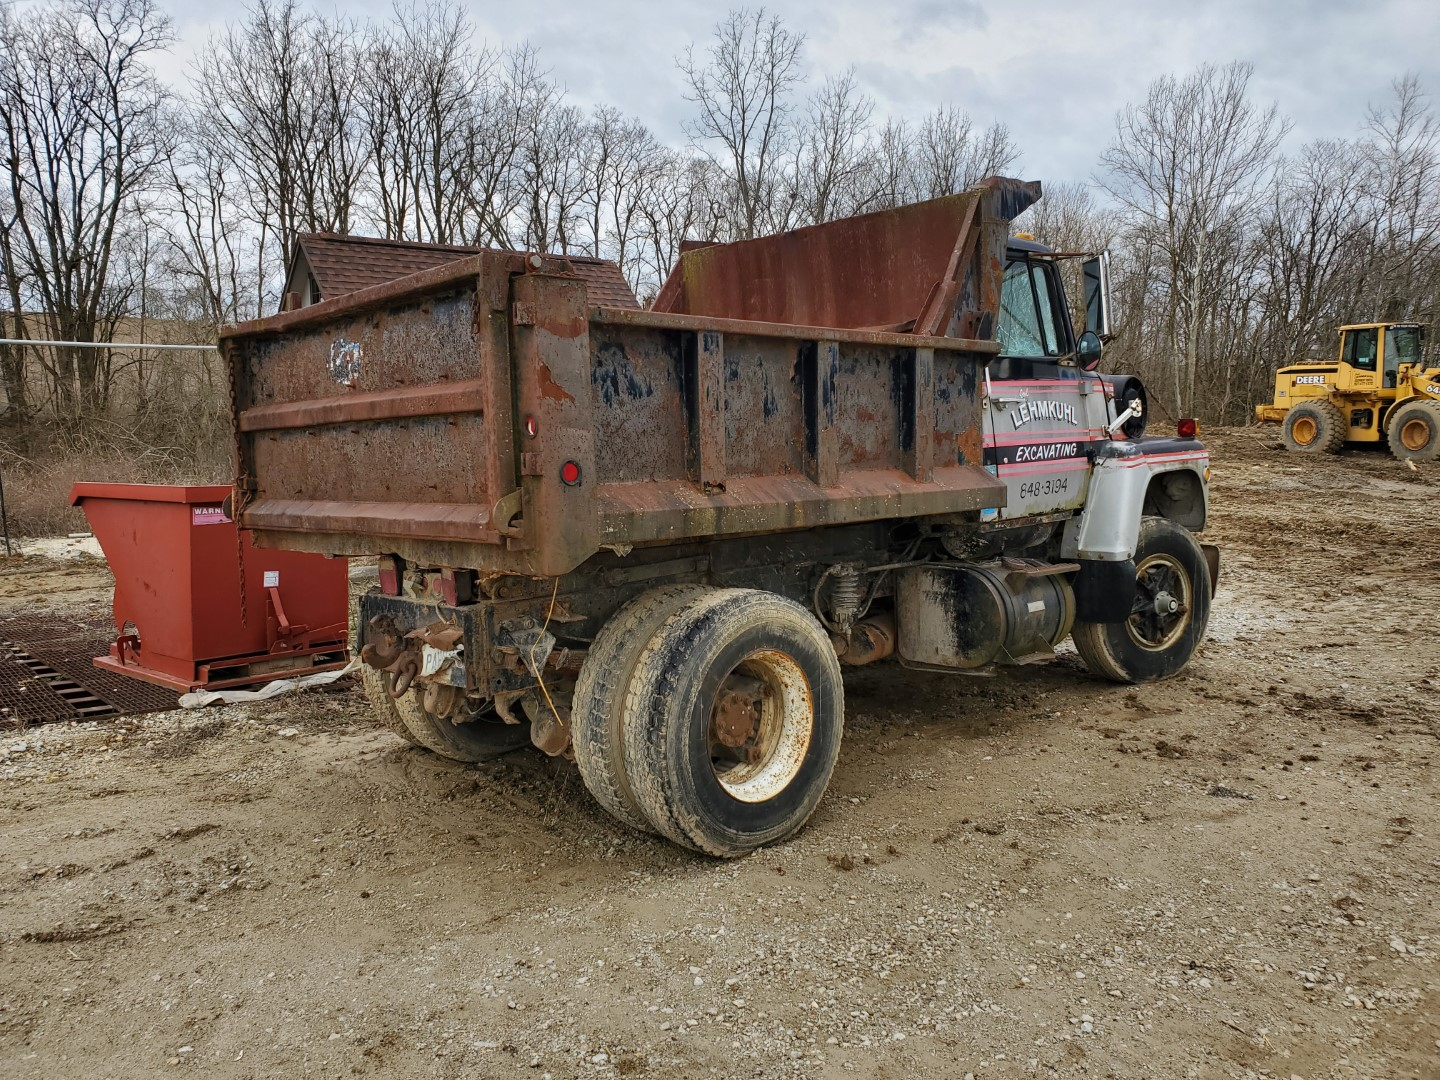 1976 Ford 8000 Single Axle Dump Truck, 9 ft Dump Bed, Manual Transmission, 2-Speed Axle, 86,500 Mile - Image 3 of 6